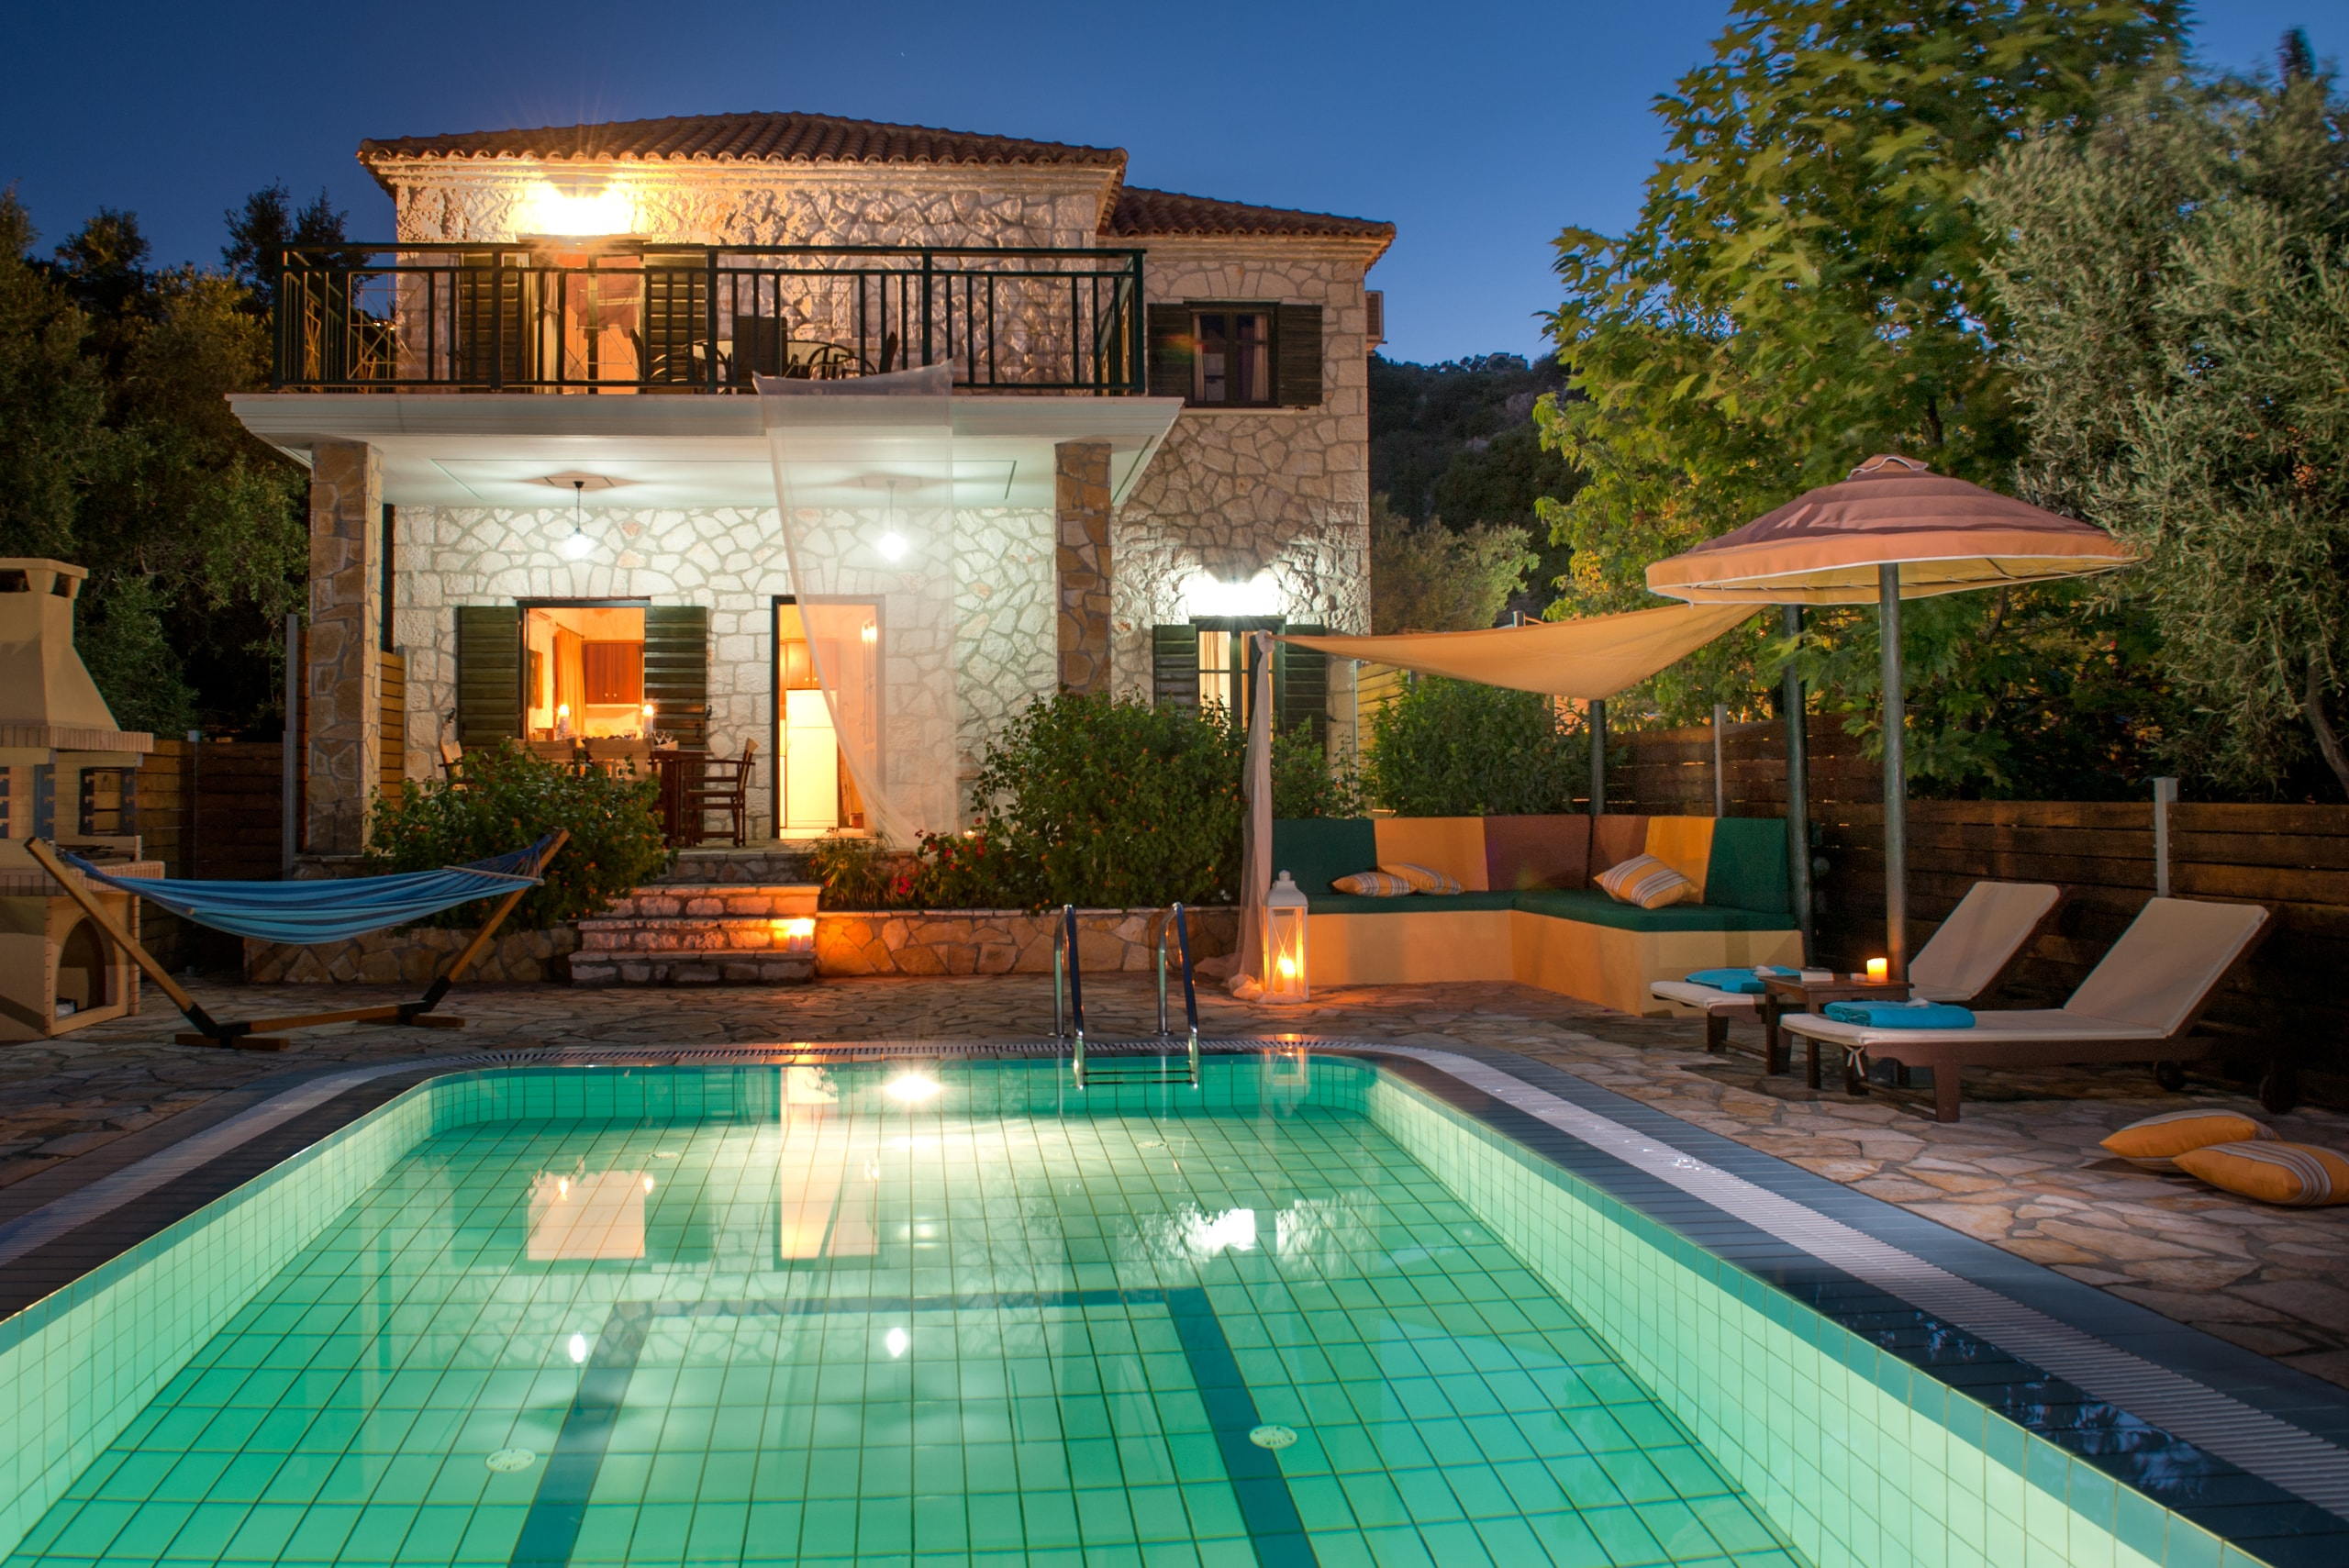 Property Image 1 - Lovely villa with private pool